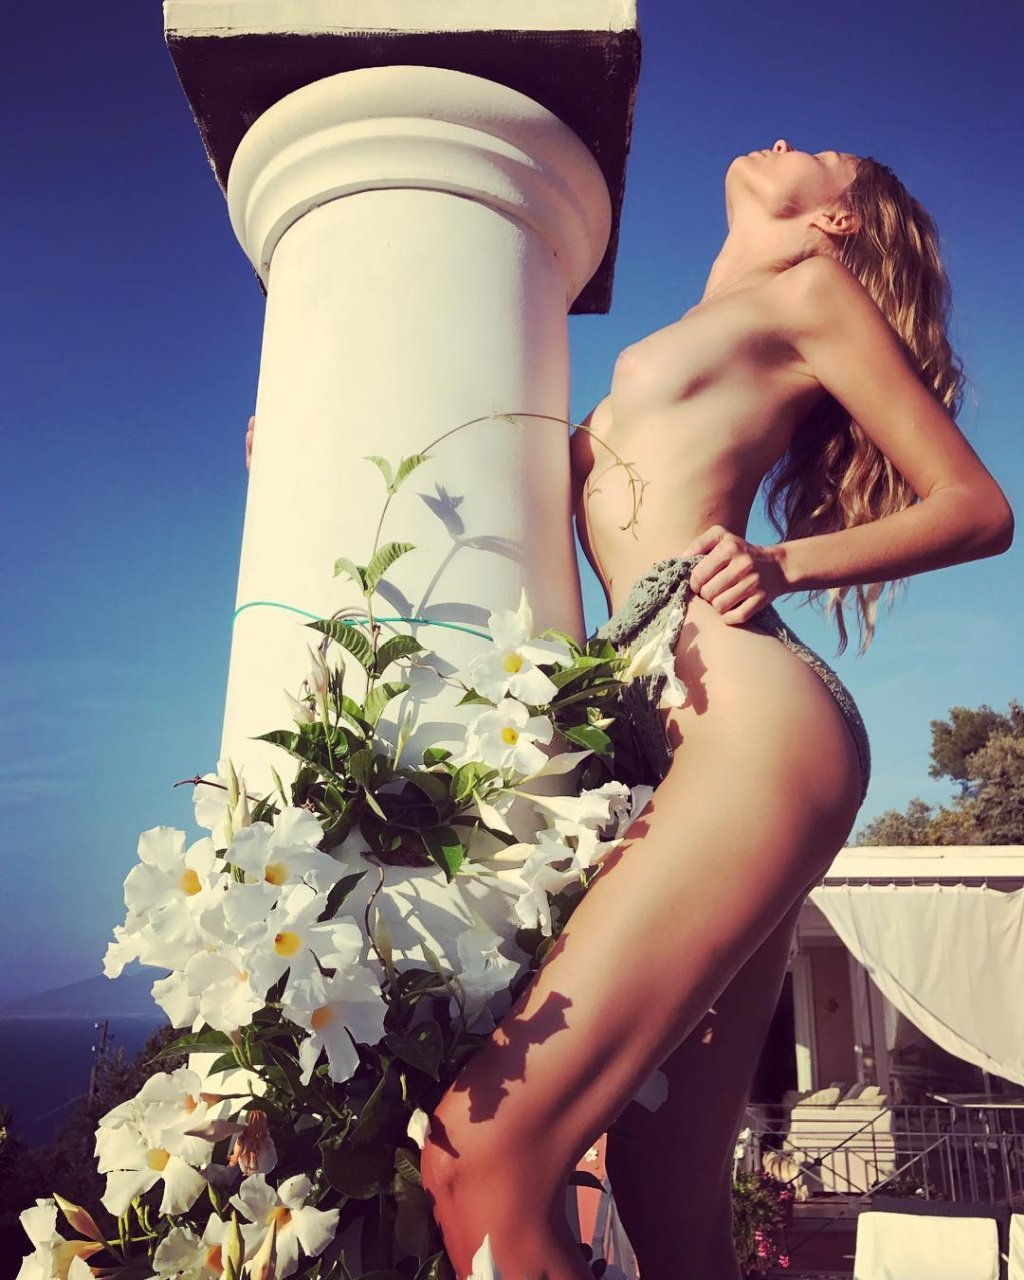 Magdalena frackowiak topless photos 2